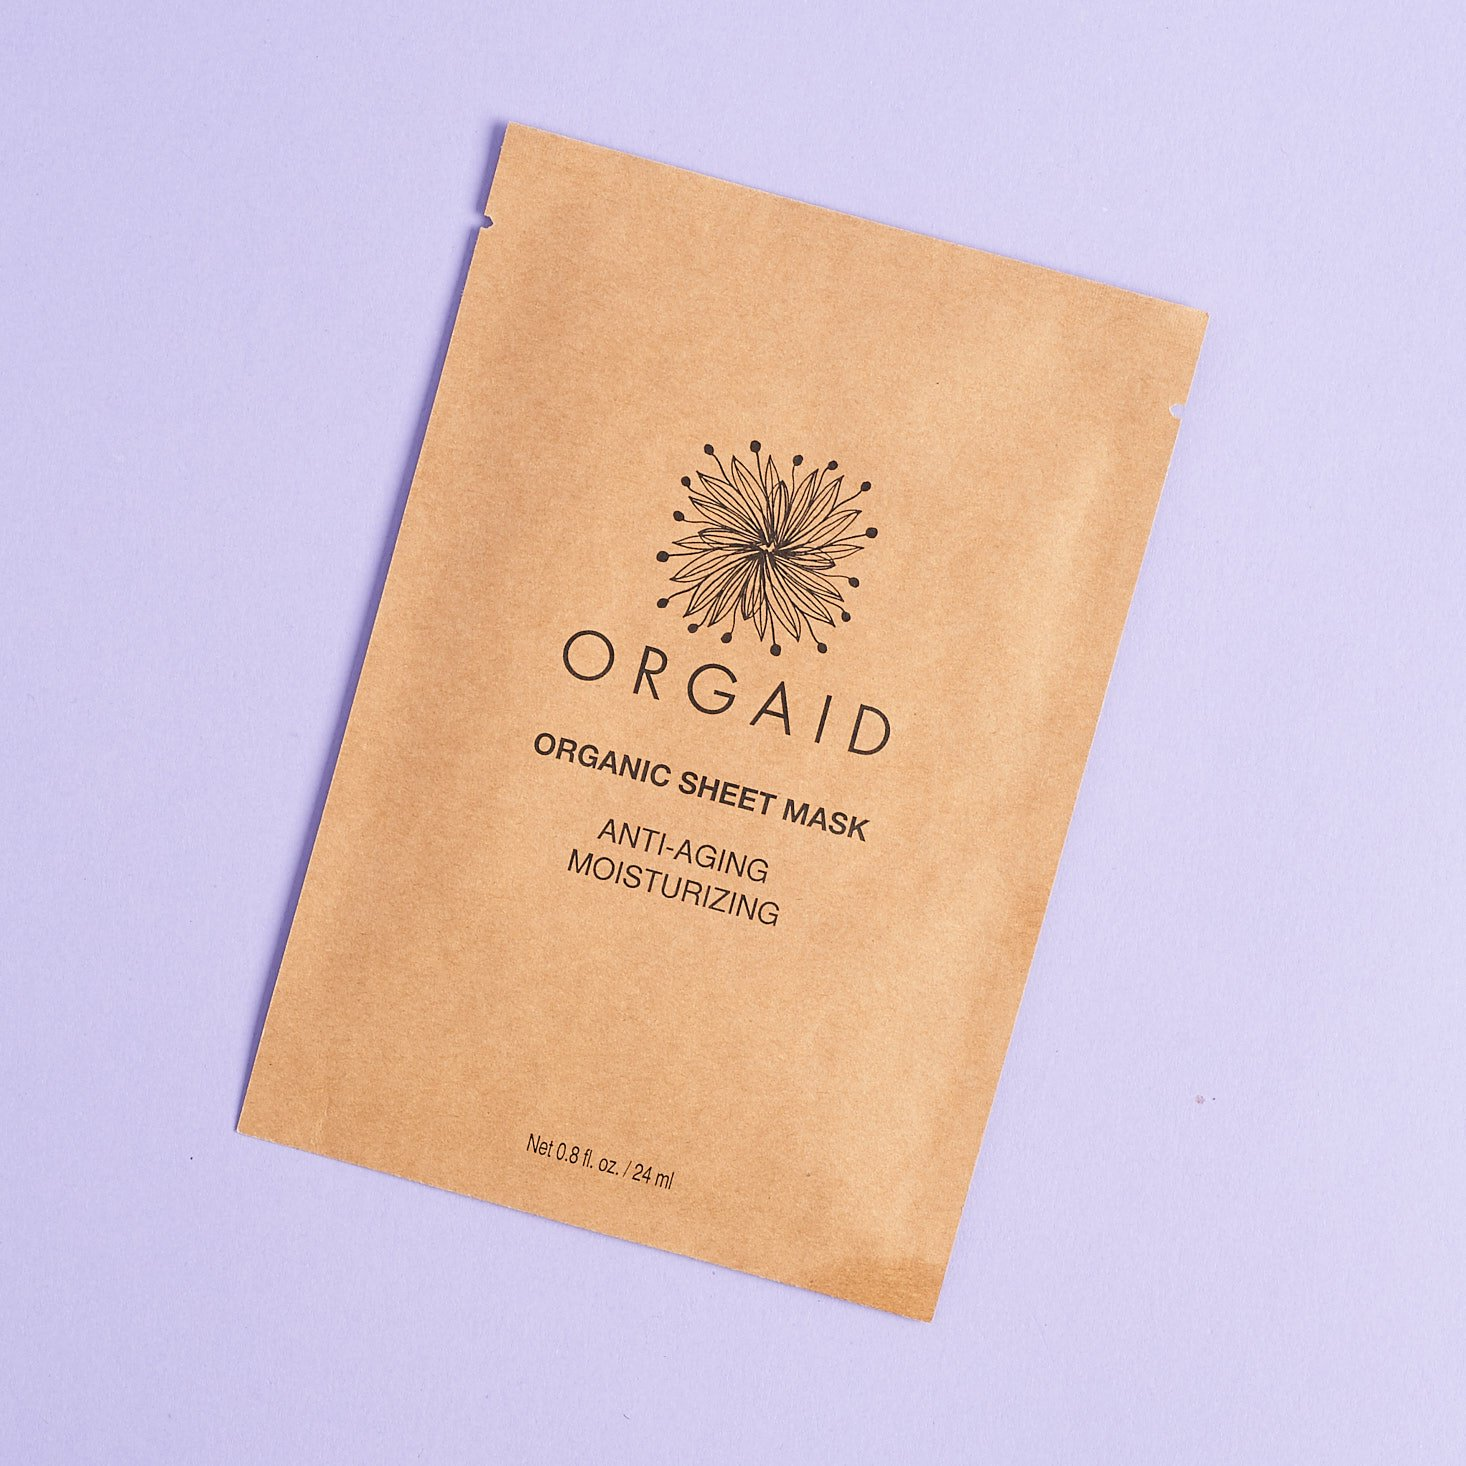 Orgaid Anti-Aging Moisturizing Organic Sheet Mask